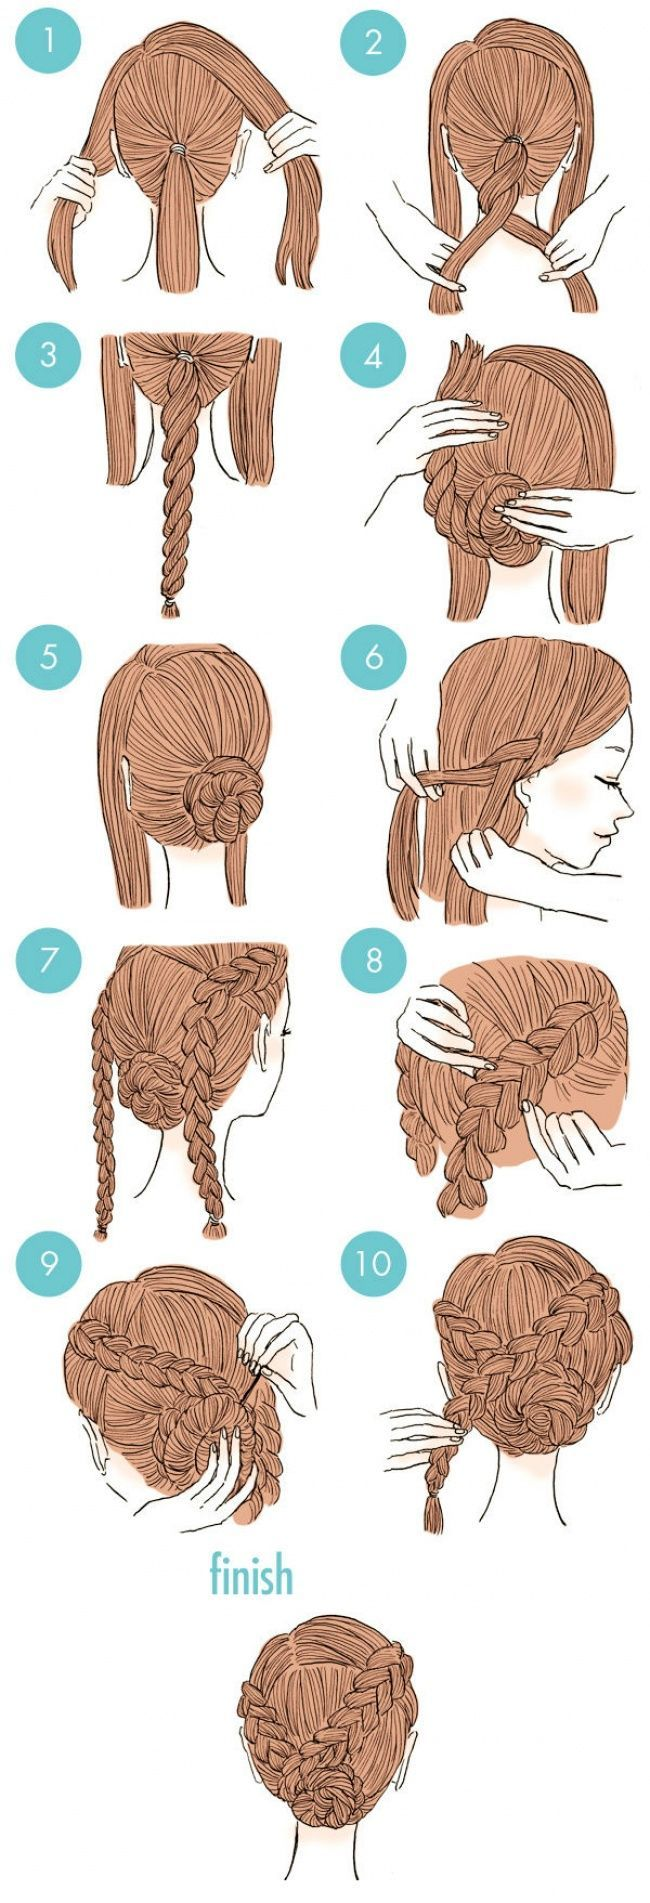 20 Easy And Cute Hairstyles That Can Be Done In Just A Few Minutes